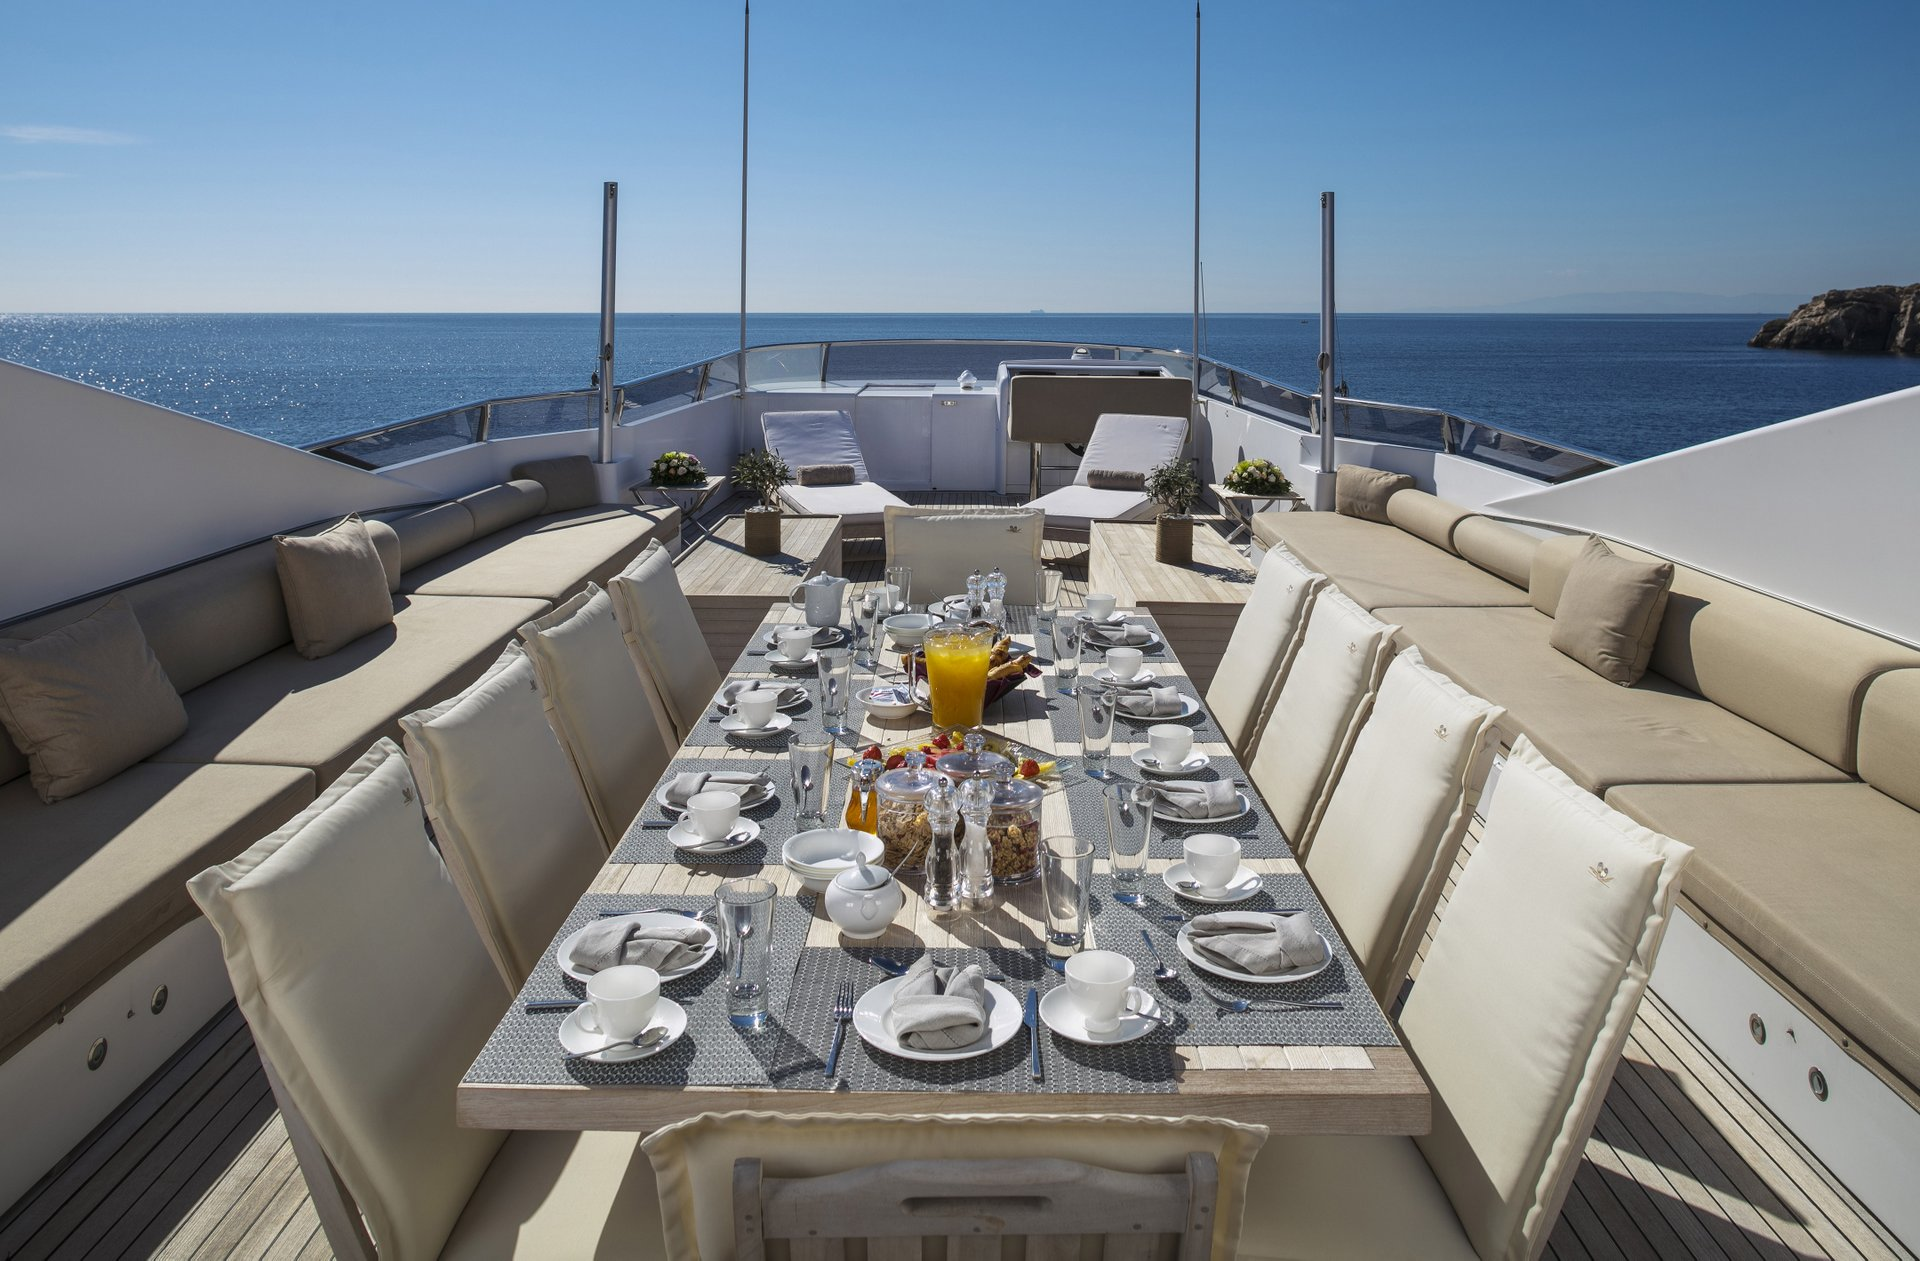 M/Y MABROUK yacht for charter set outdoor table